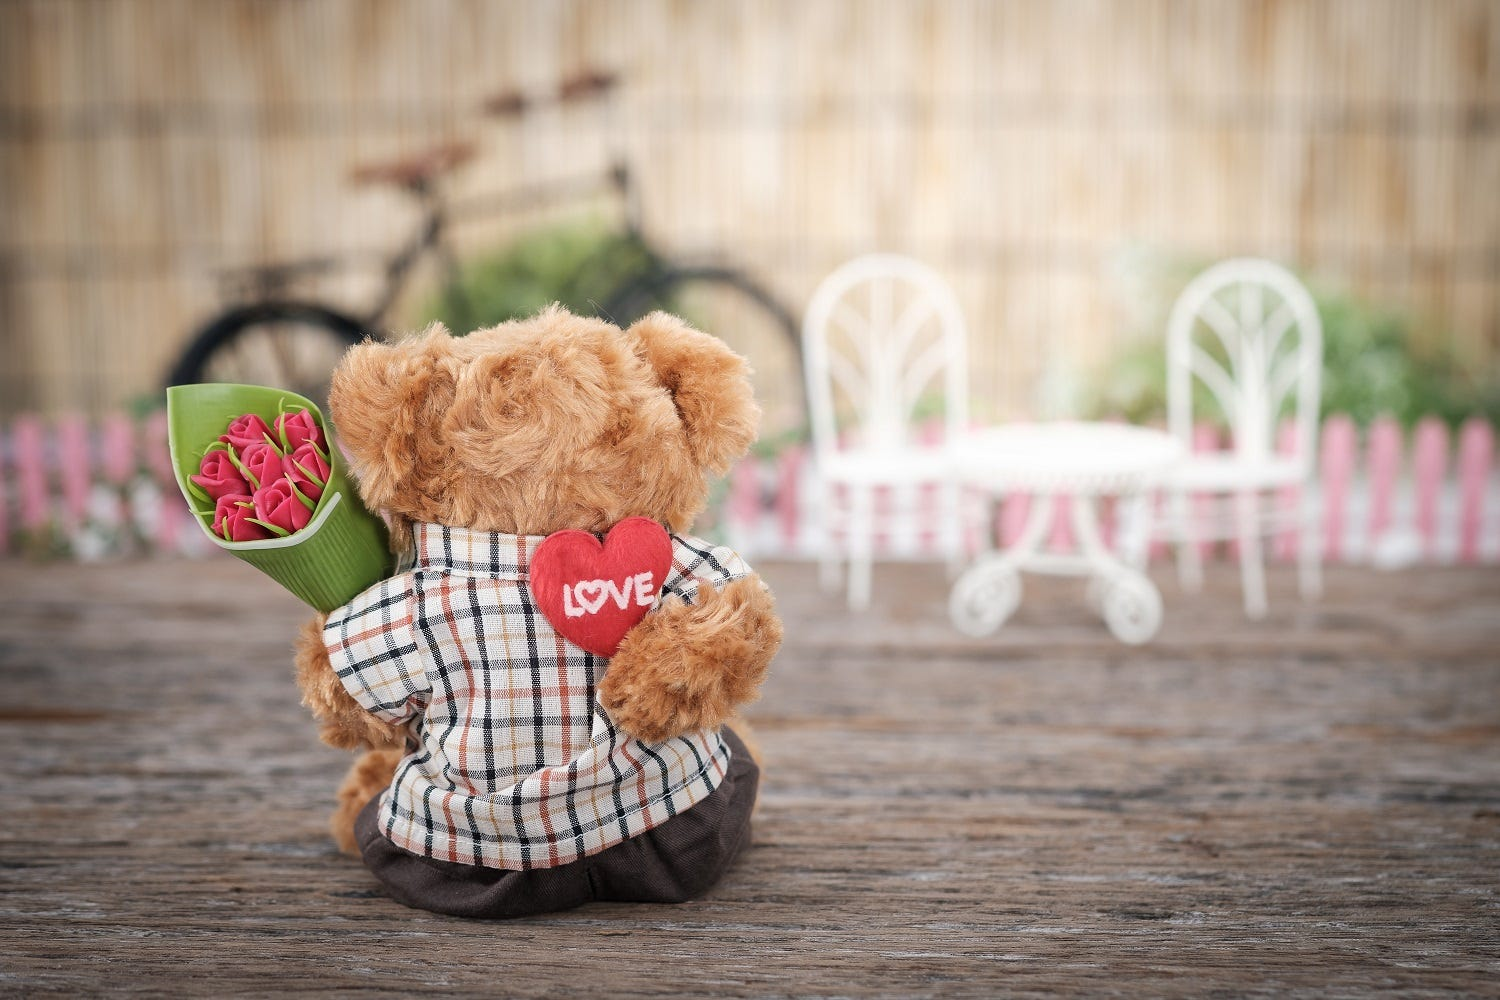 Teddy Day - Valentine Day - 10 February   IMAGES, GIF, ANIMATED GIF, WALLPAPER, STICKER FOR WHATSAPP & FACEBOOK